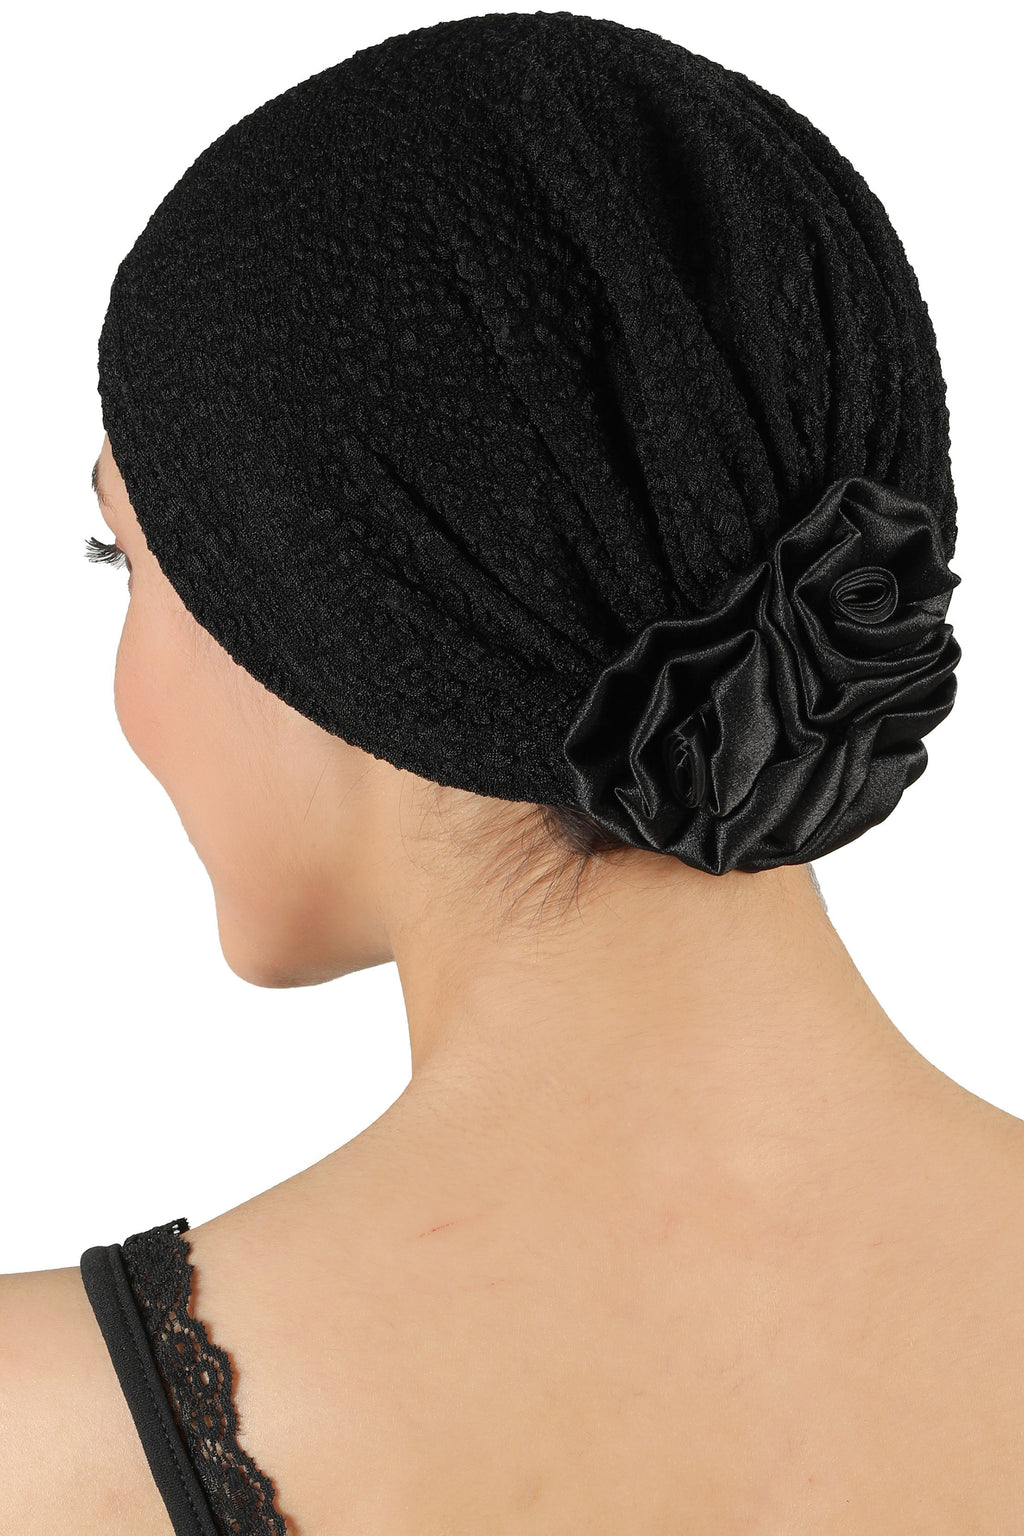 Rose Headwear - Black